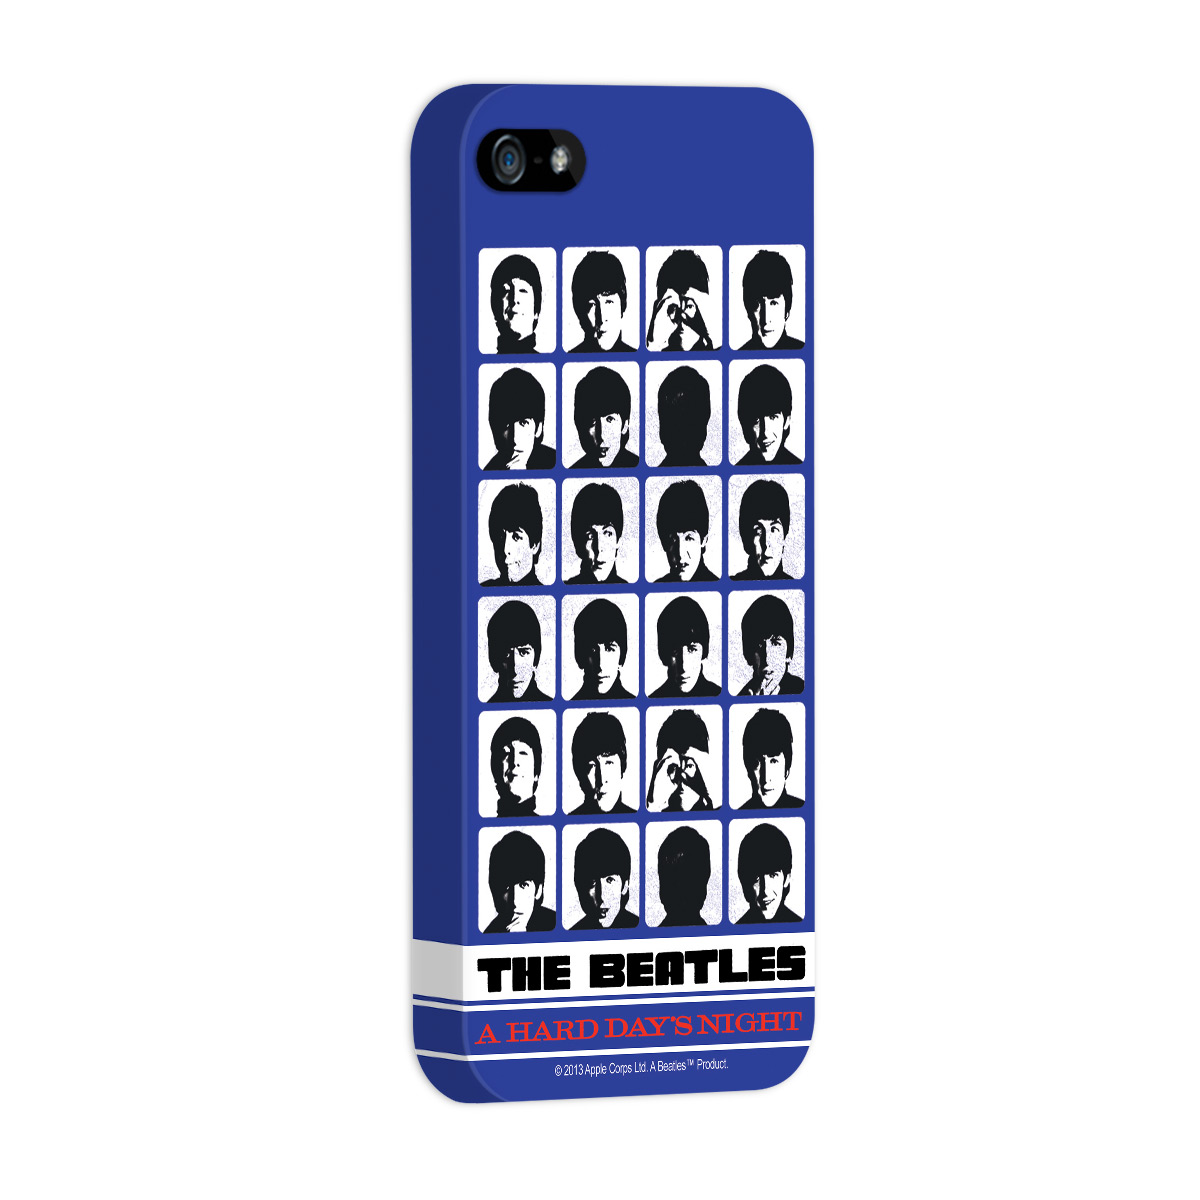 Capa de iPhone 5/5S The Beatles a Hard Day's Night